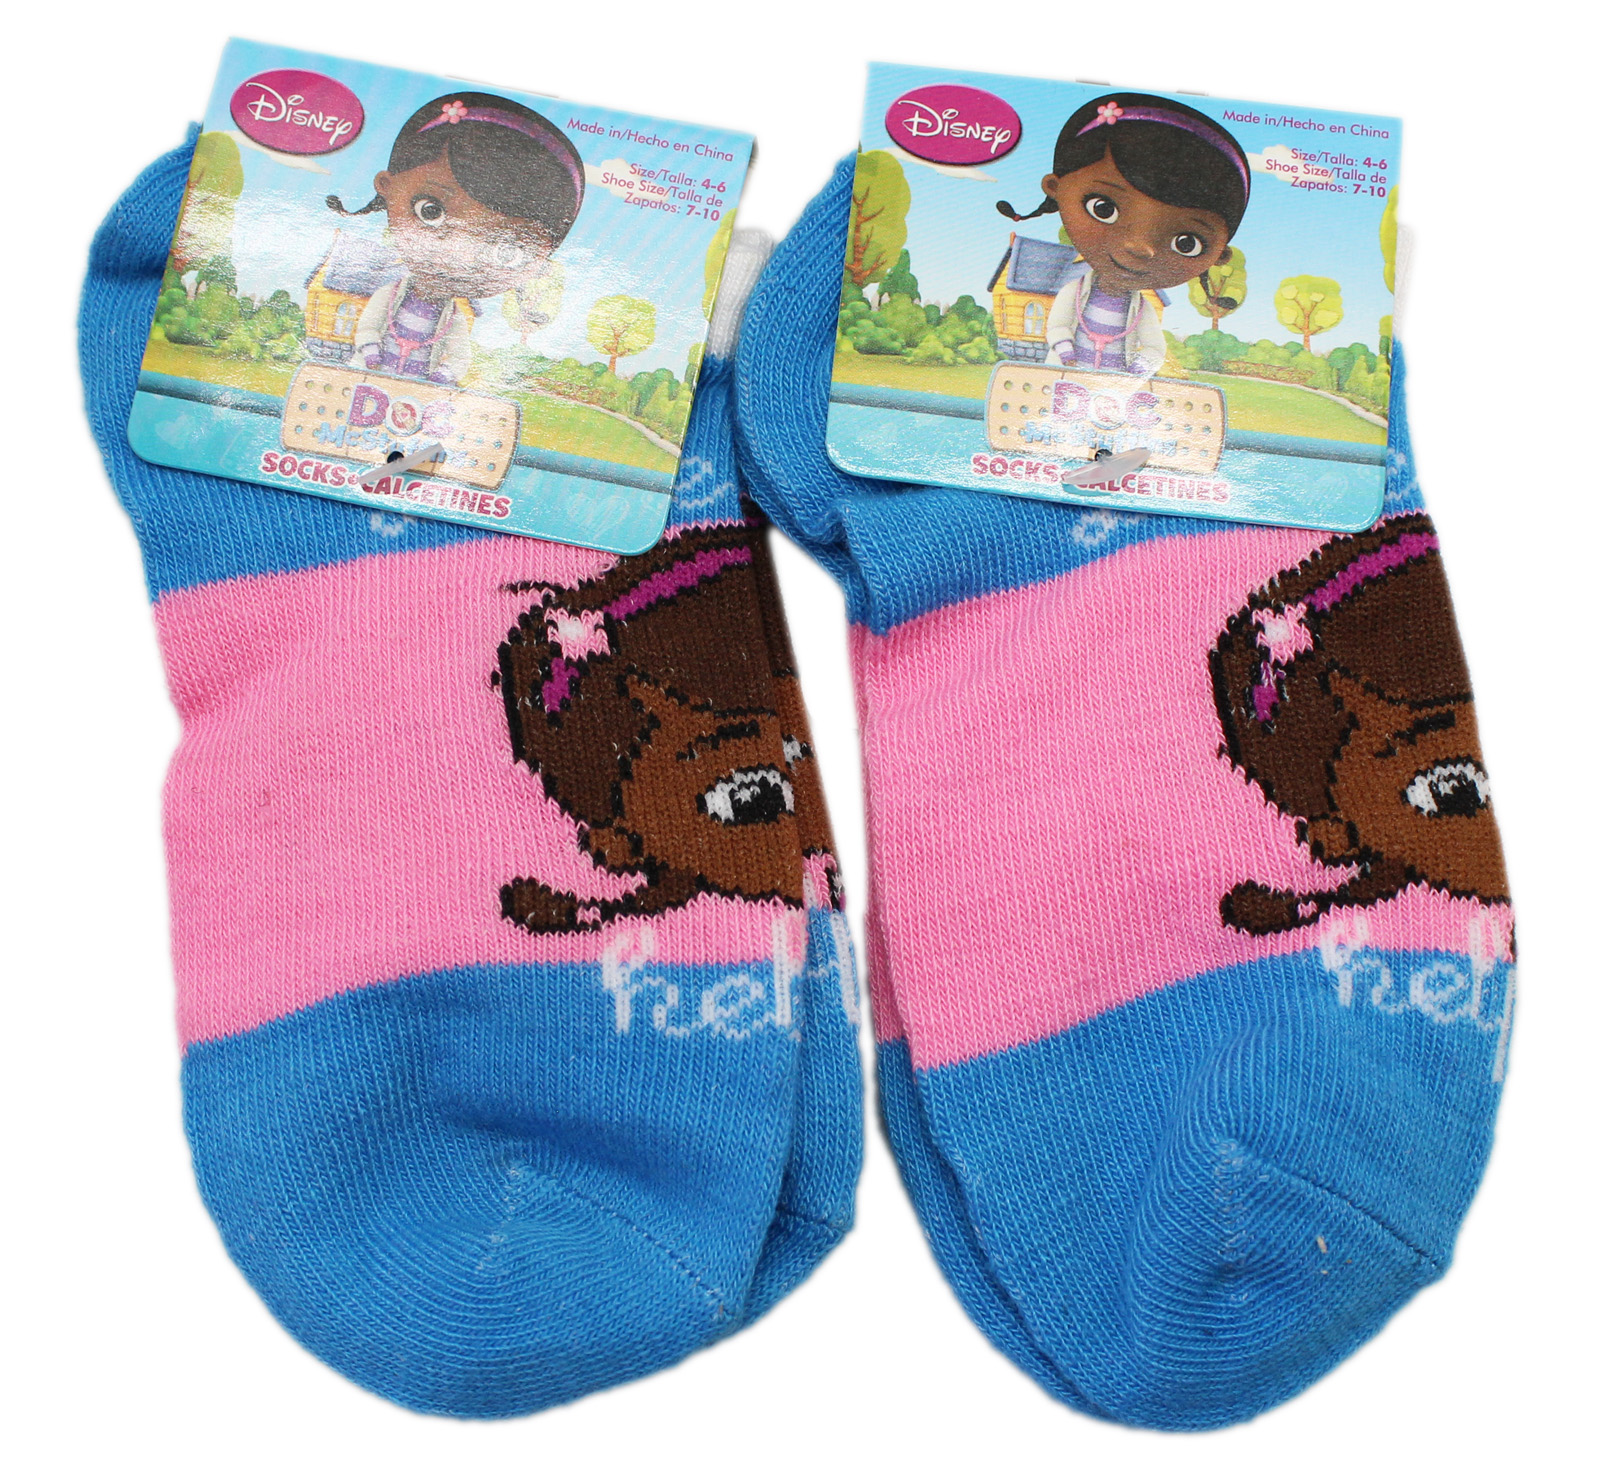 Disney's Doc McStuffins Pink/Blue Colored Kids Socks (Size 4-6, 2 Pairs)